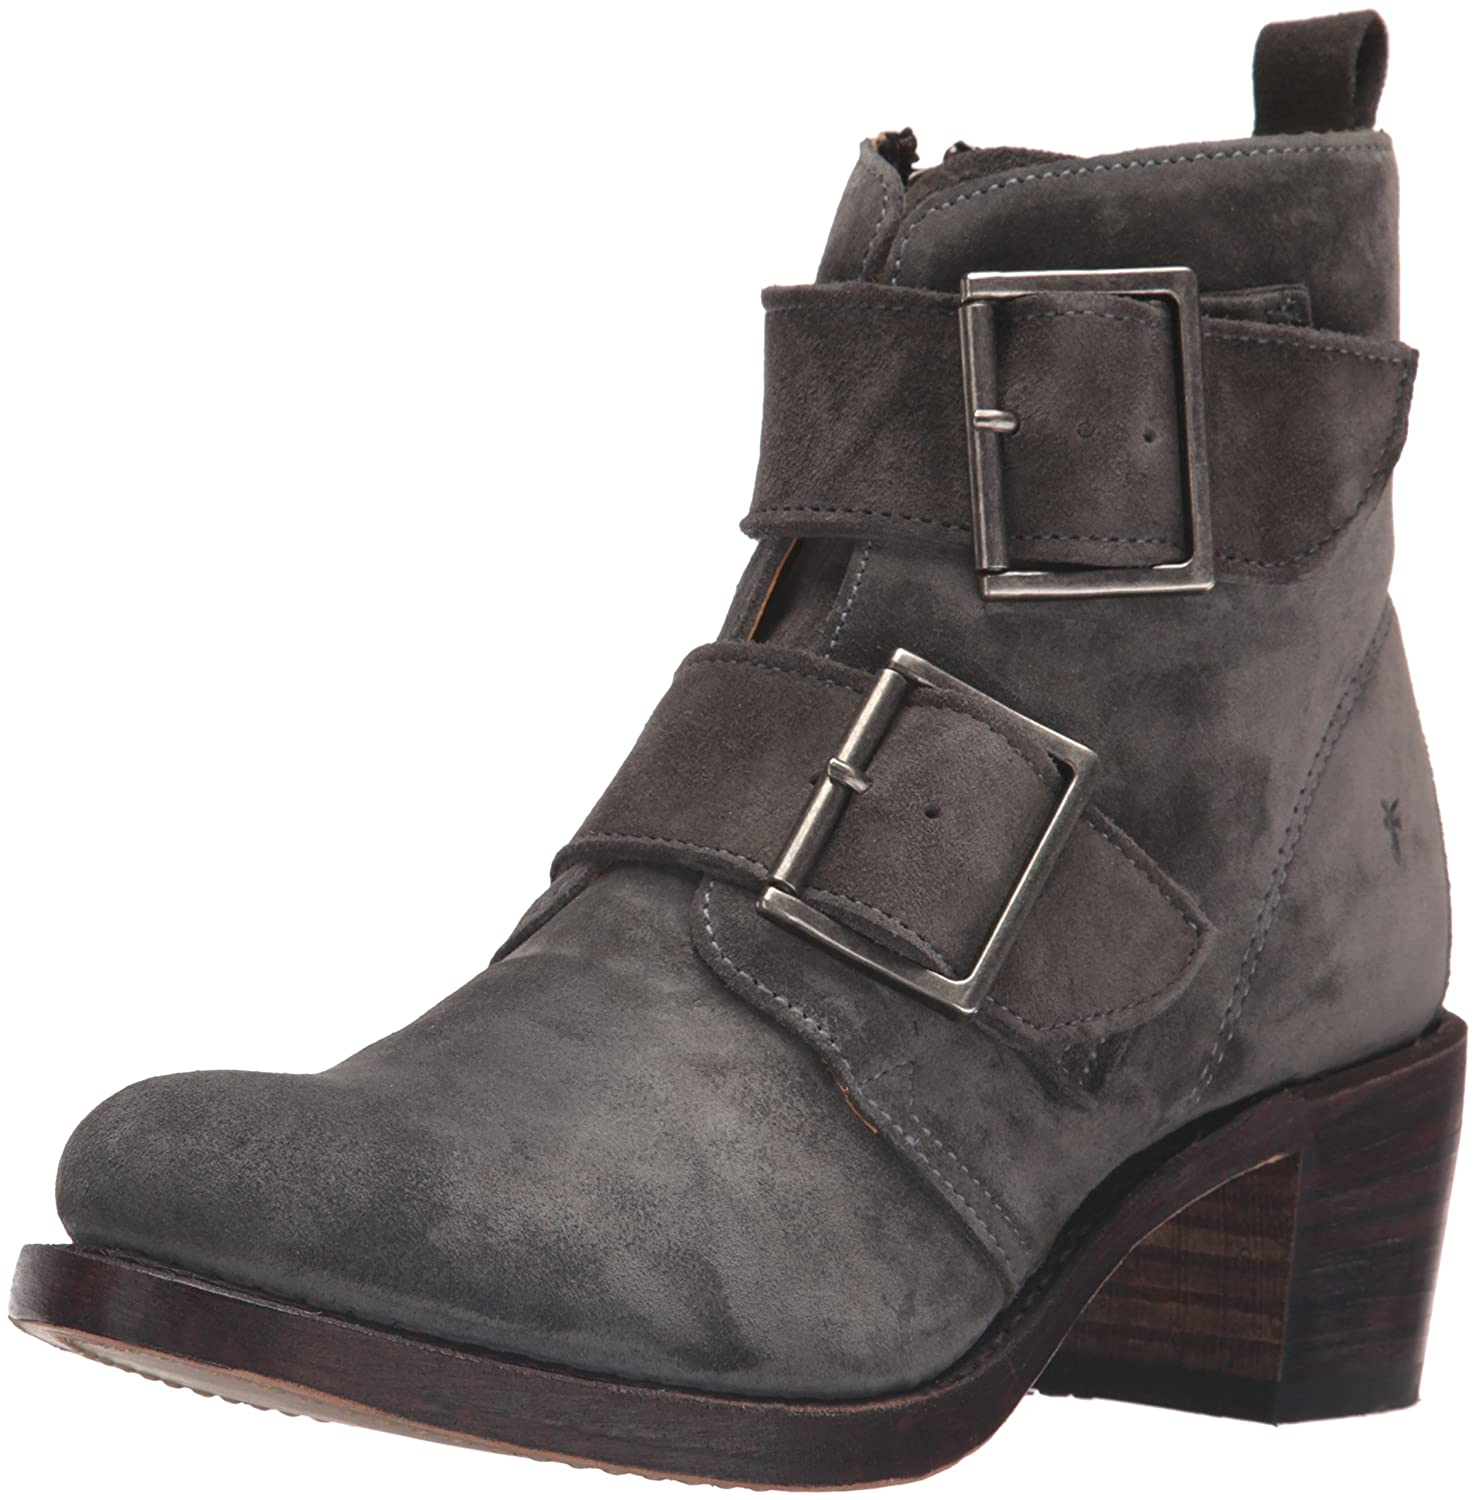 Anthracite FRYE Wohommes Sabrina Double Buckle Suede démarrage